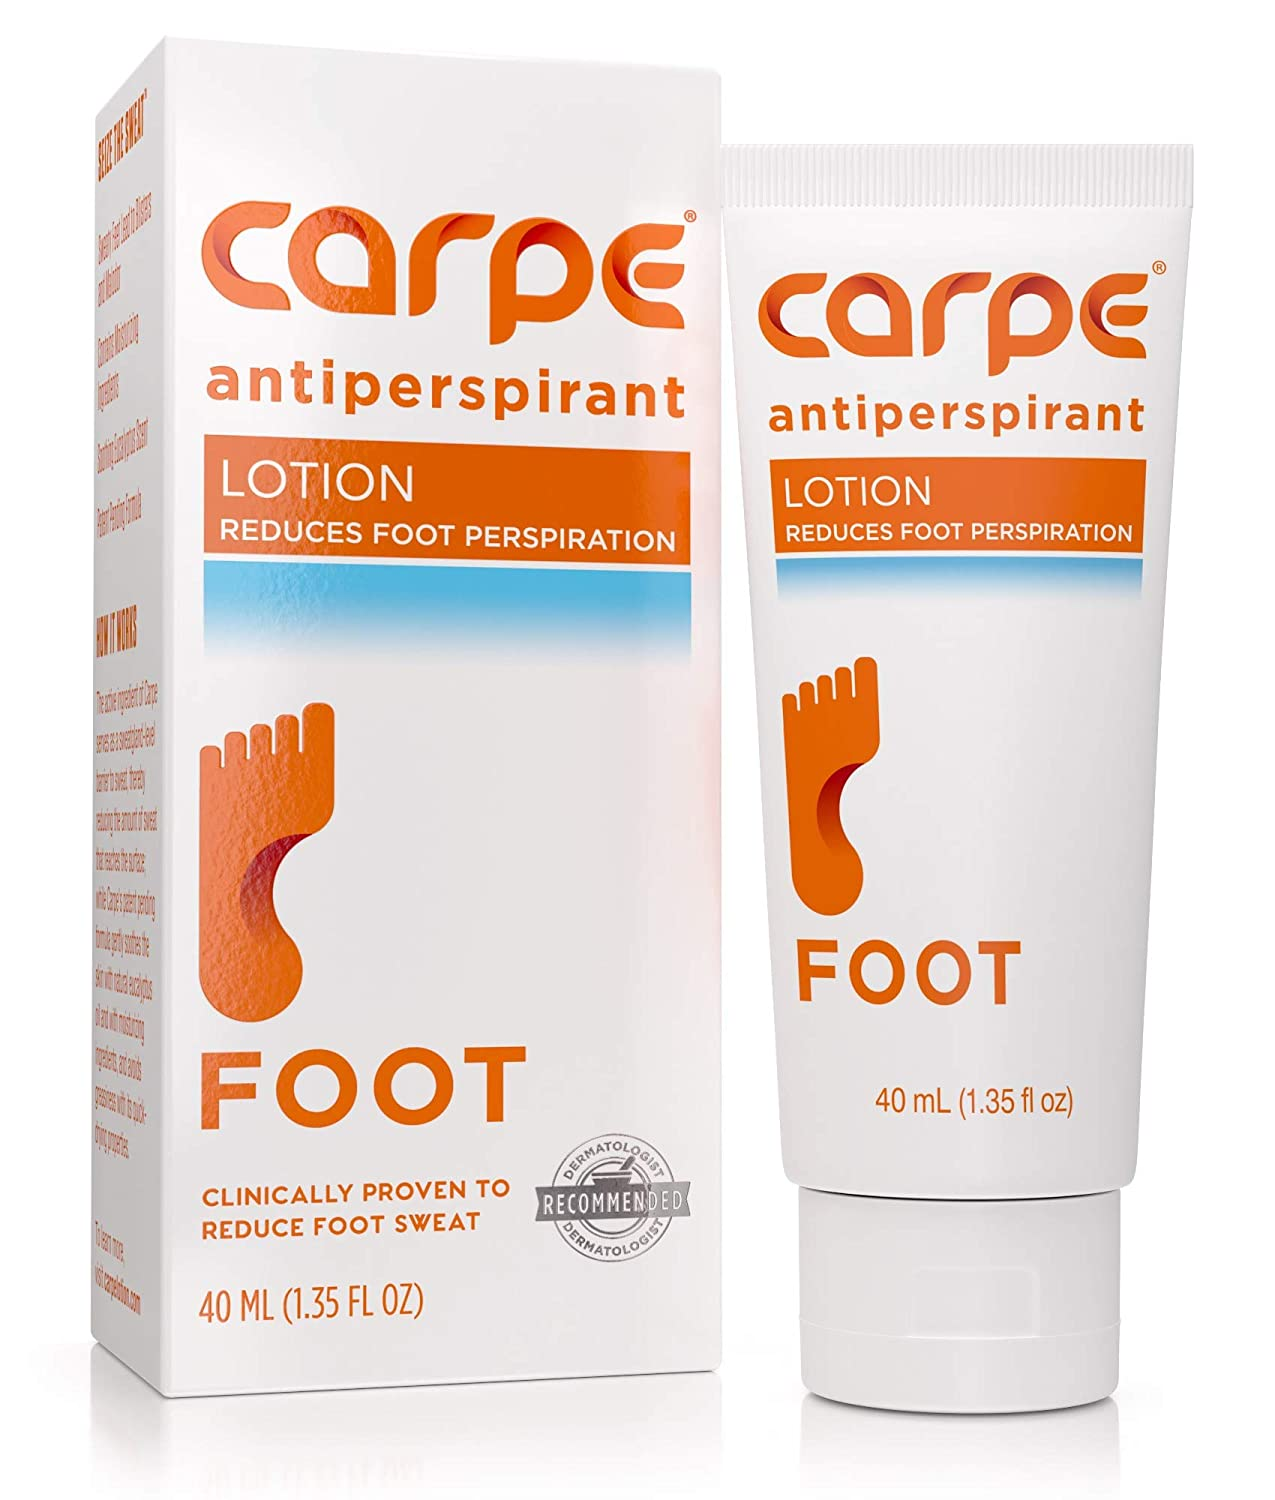 Carpe Antiperspirant Foot Lotion, A Dermatologist-Recommended Solution to Stop Sweaty, Smelly feet, Helps Prevent blisters, Great for hyperhidrosis